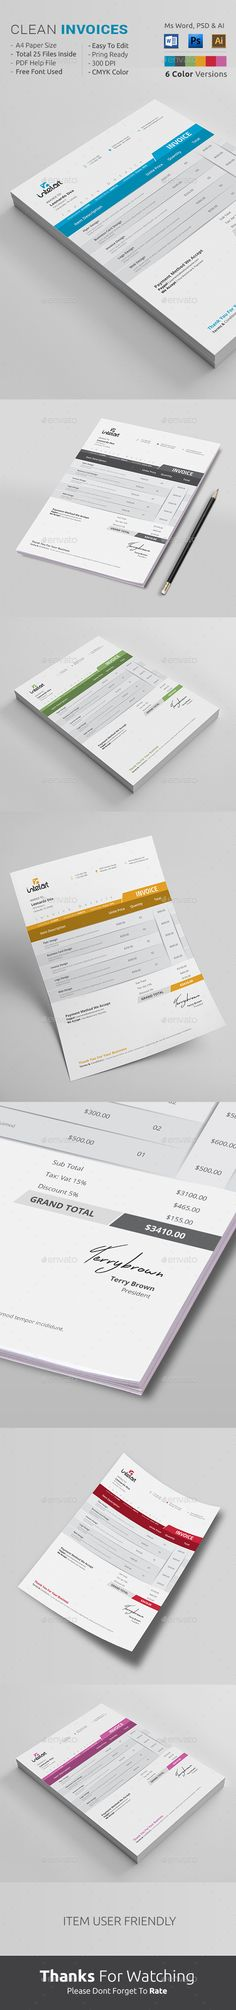 20 Creative Invoice \ Proposal Template Designs Template - how to create an invoice in excel